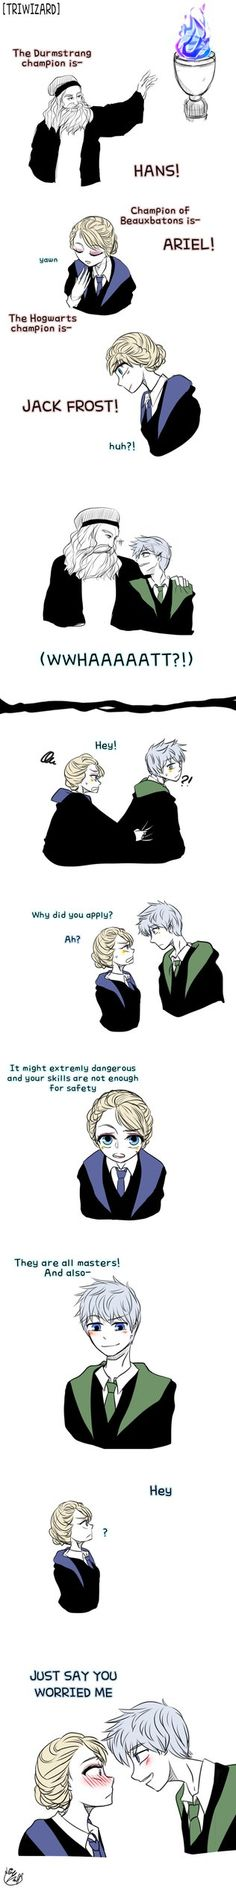 Jack Frost and Elsa Harry potter